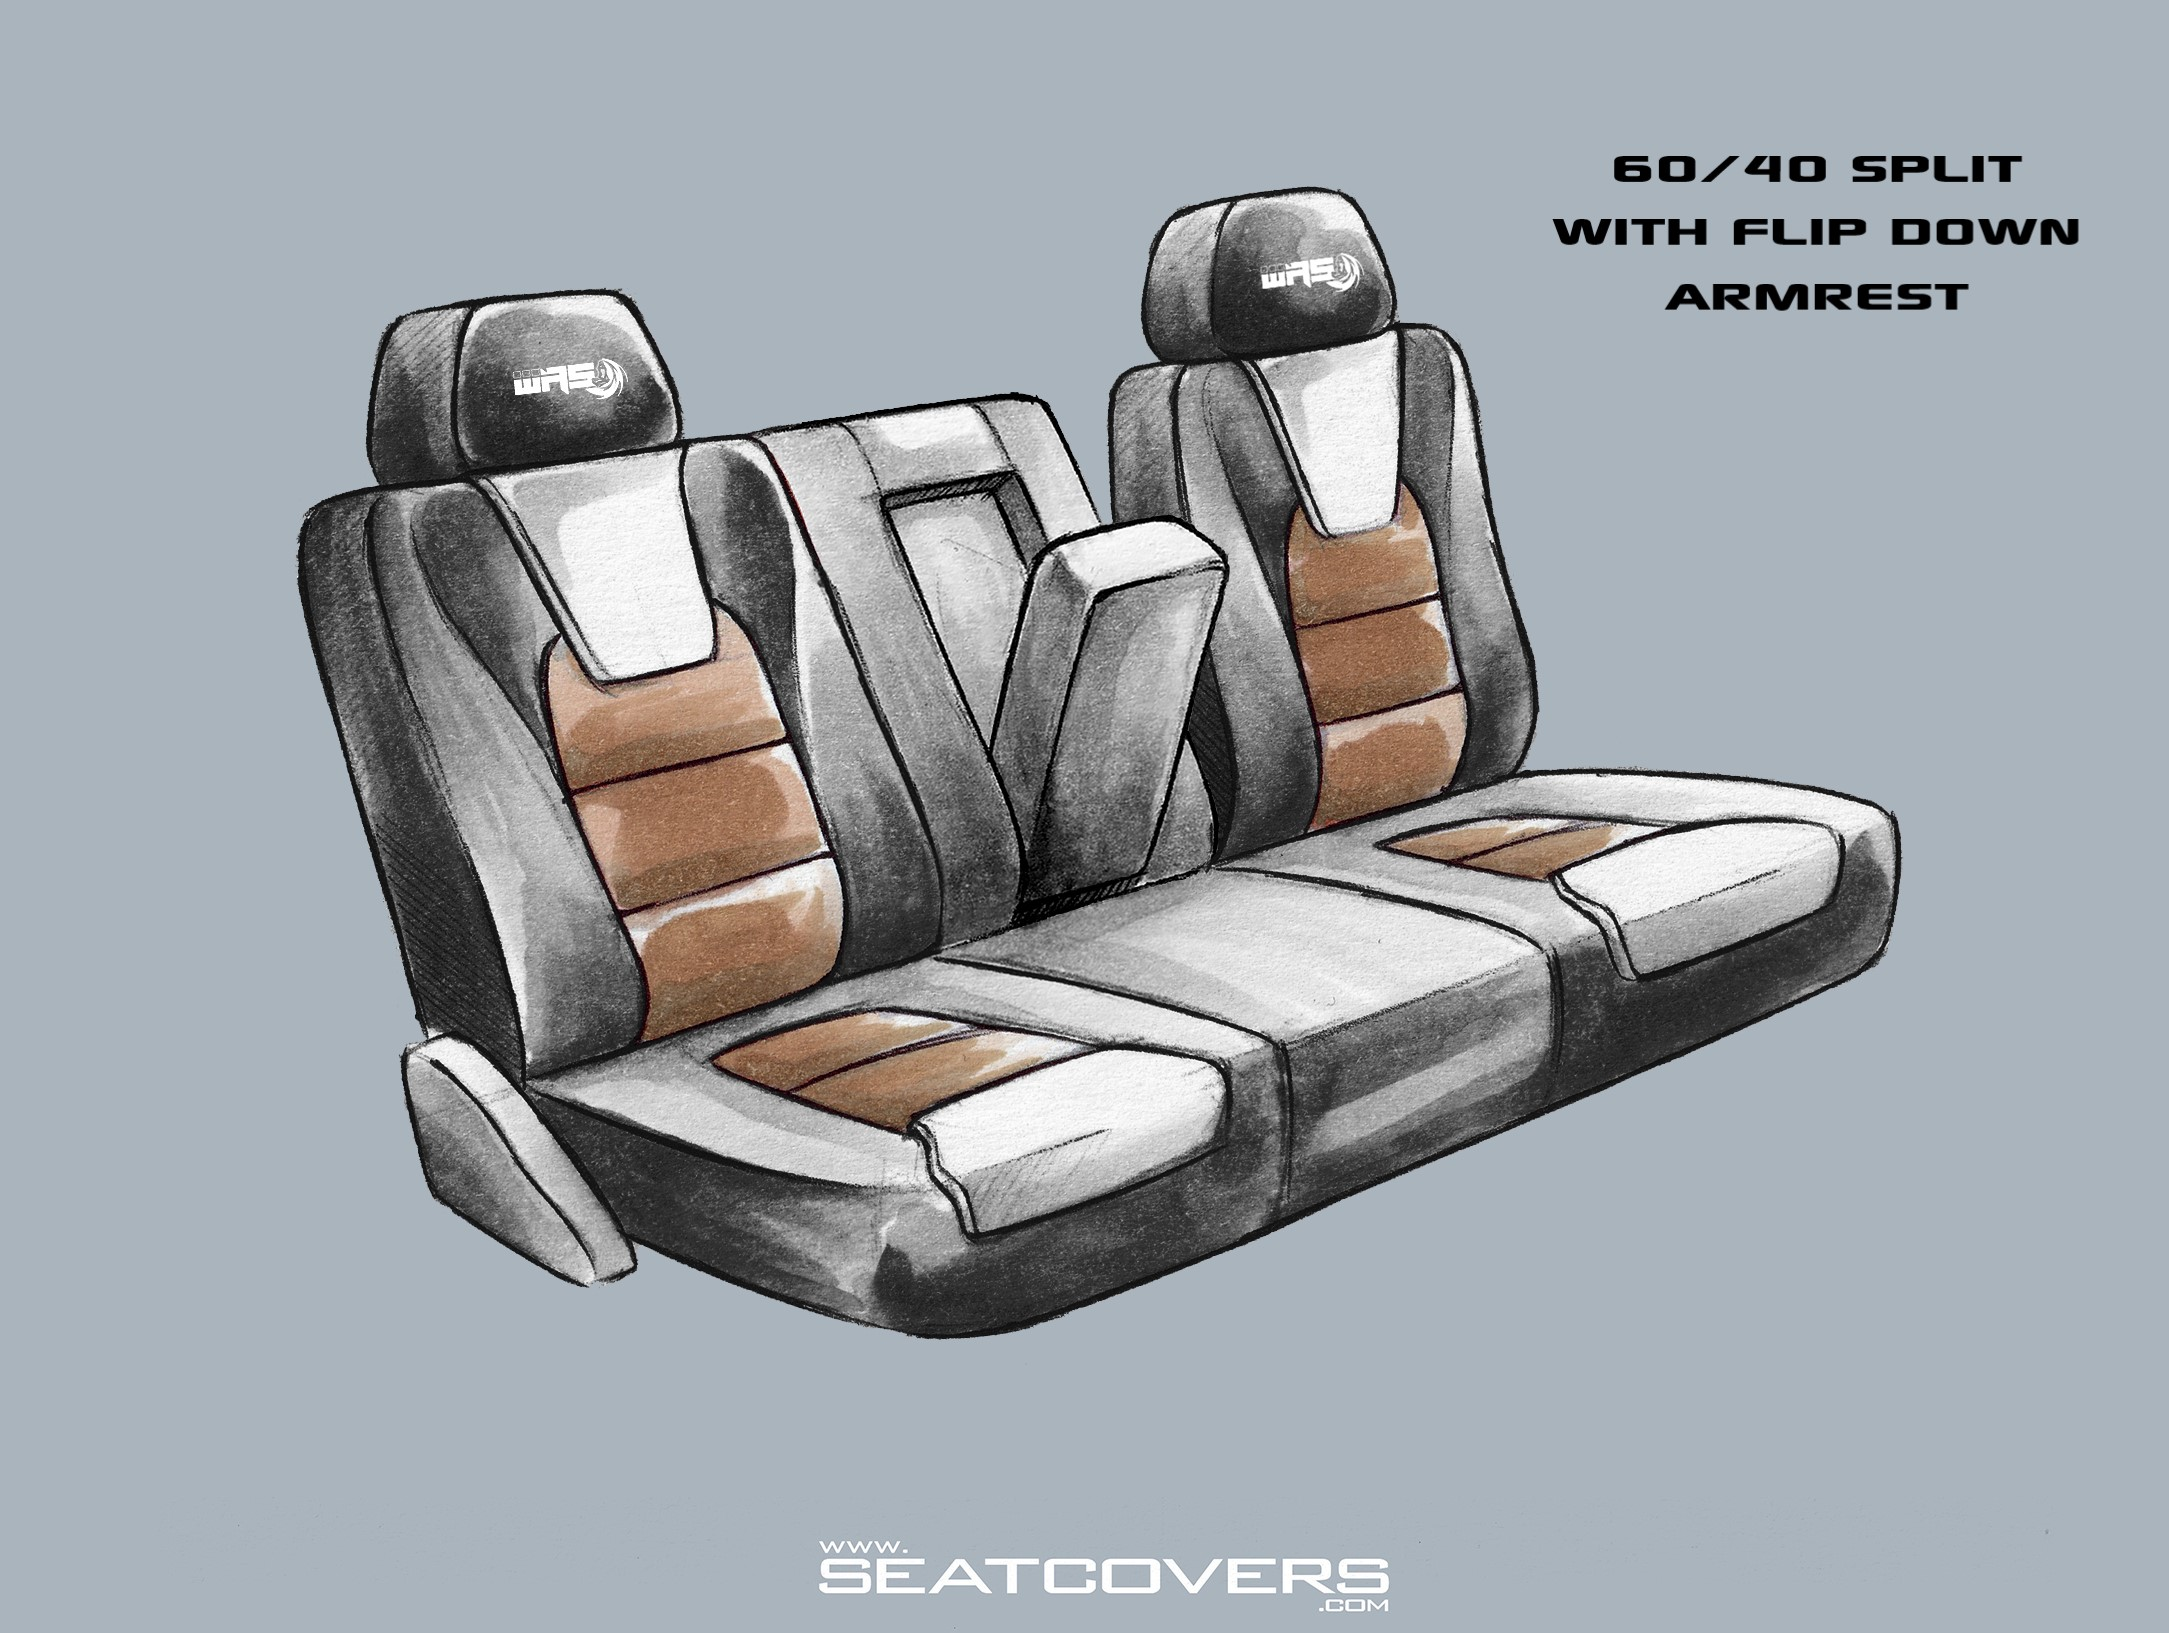 Ford Escape Rear seatcovers seatcovers.com